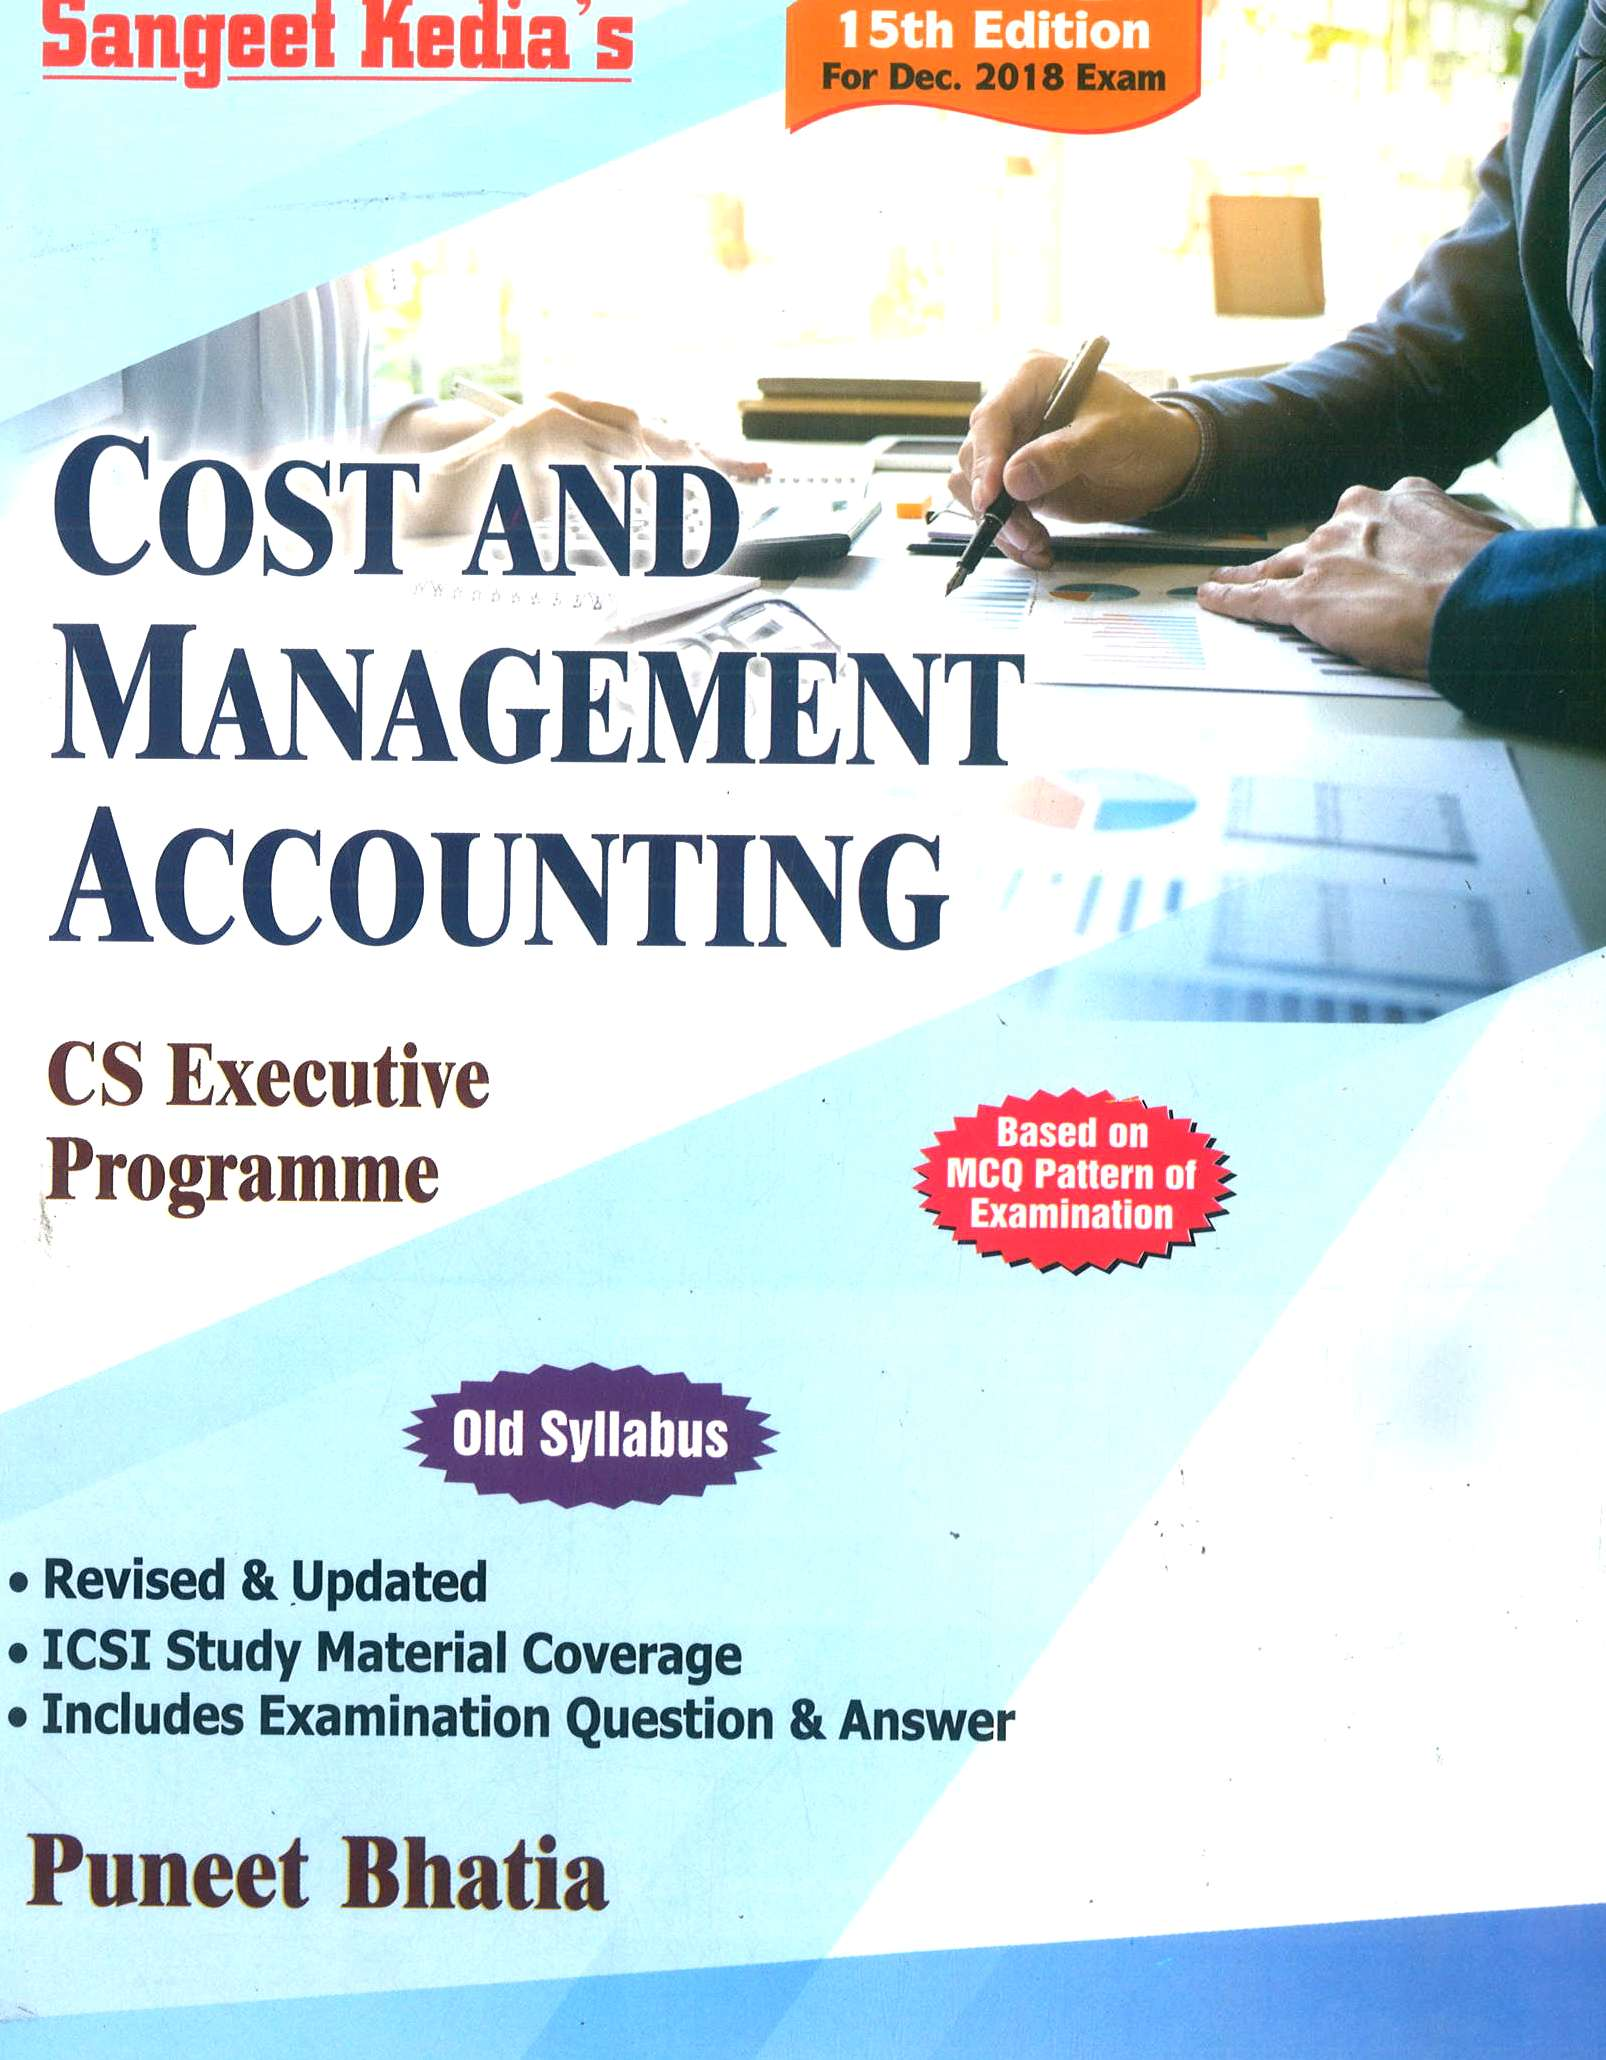 Sangeet Kedia Cost & Management Accounting for CS Executive By Puneet Bhatia Applicable For Dec 2018 Exam(Pooja Law House Publishing) Edition 15th, 2018